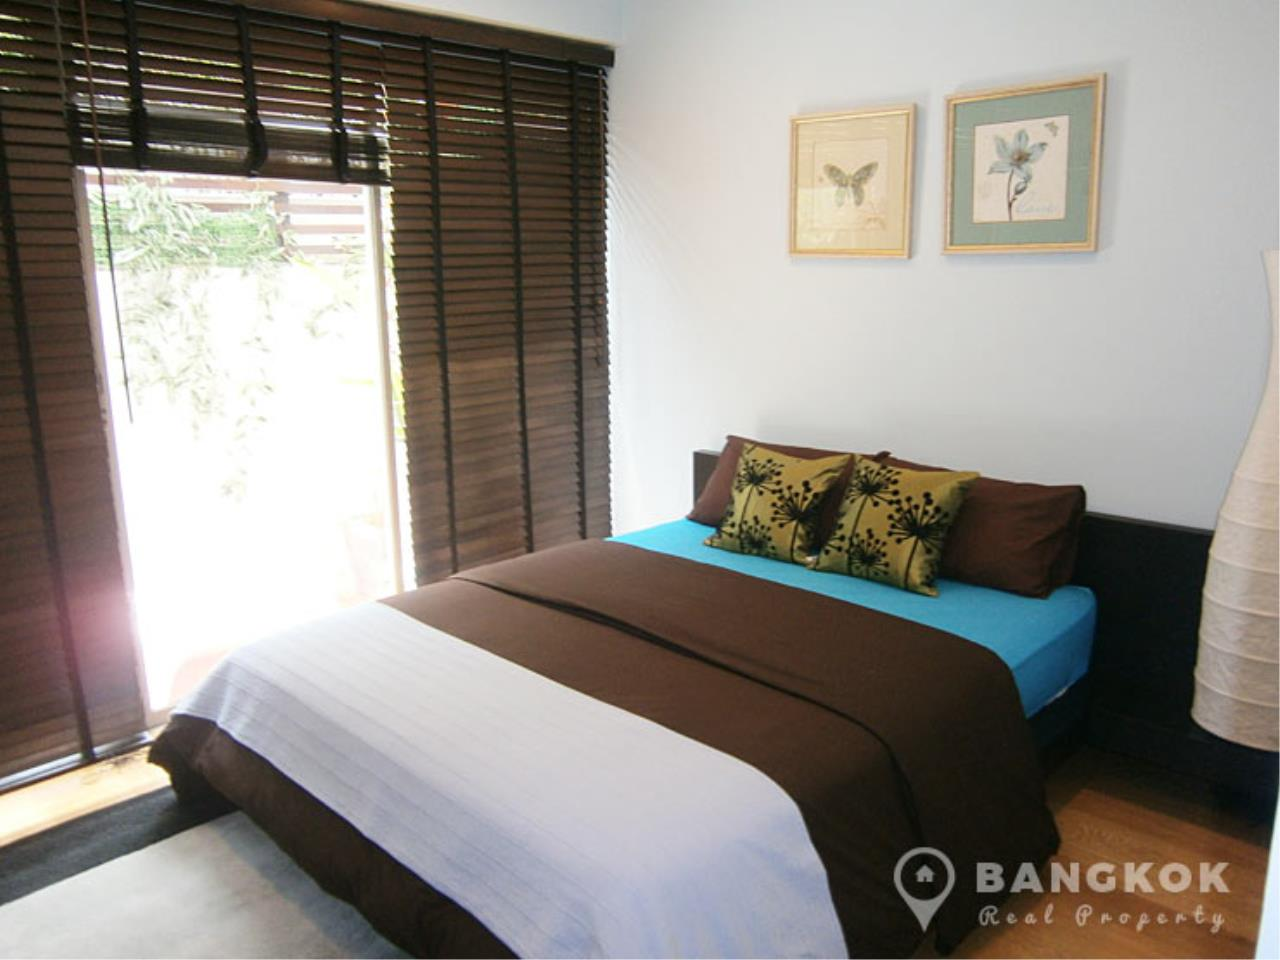 Bangkok Real Property Agency's Ficus Lane | A Fabulous Spacious 3 Bed 4 Bath Duplex near BTS 3